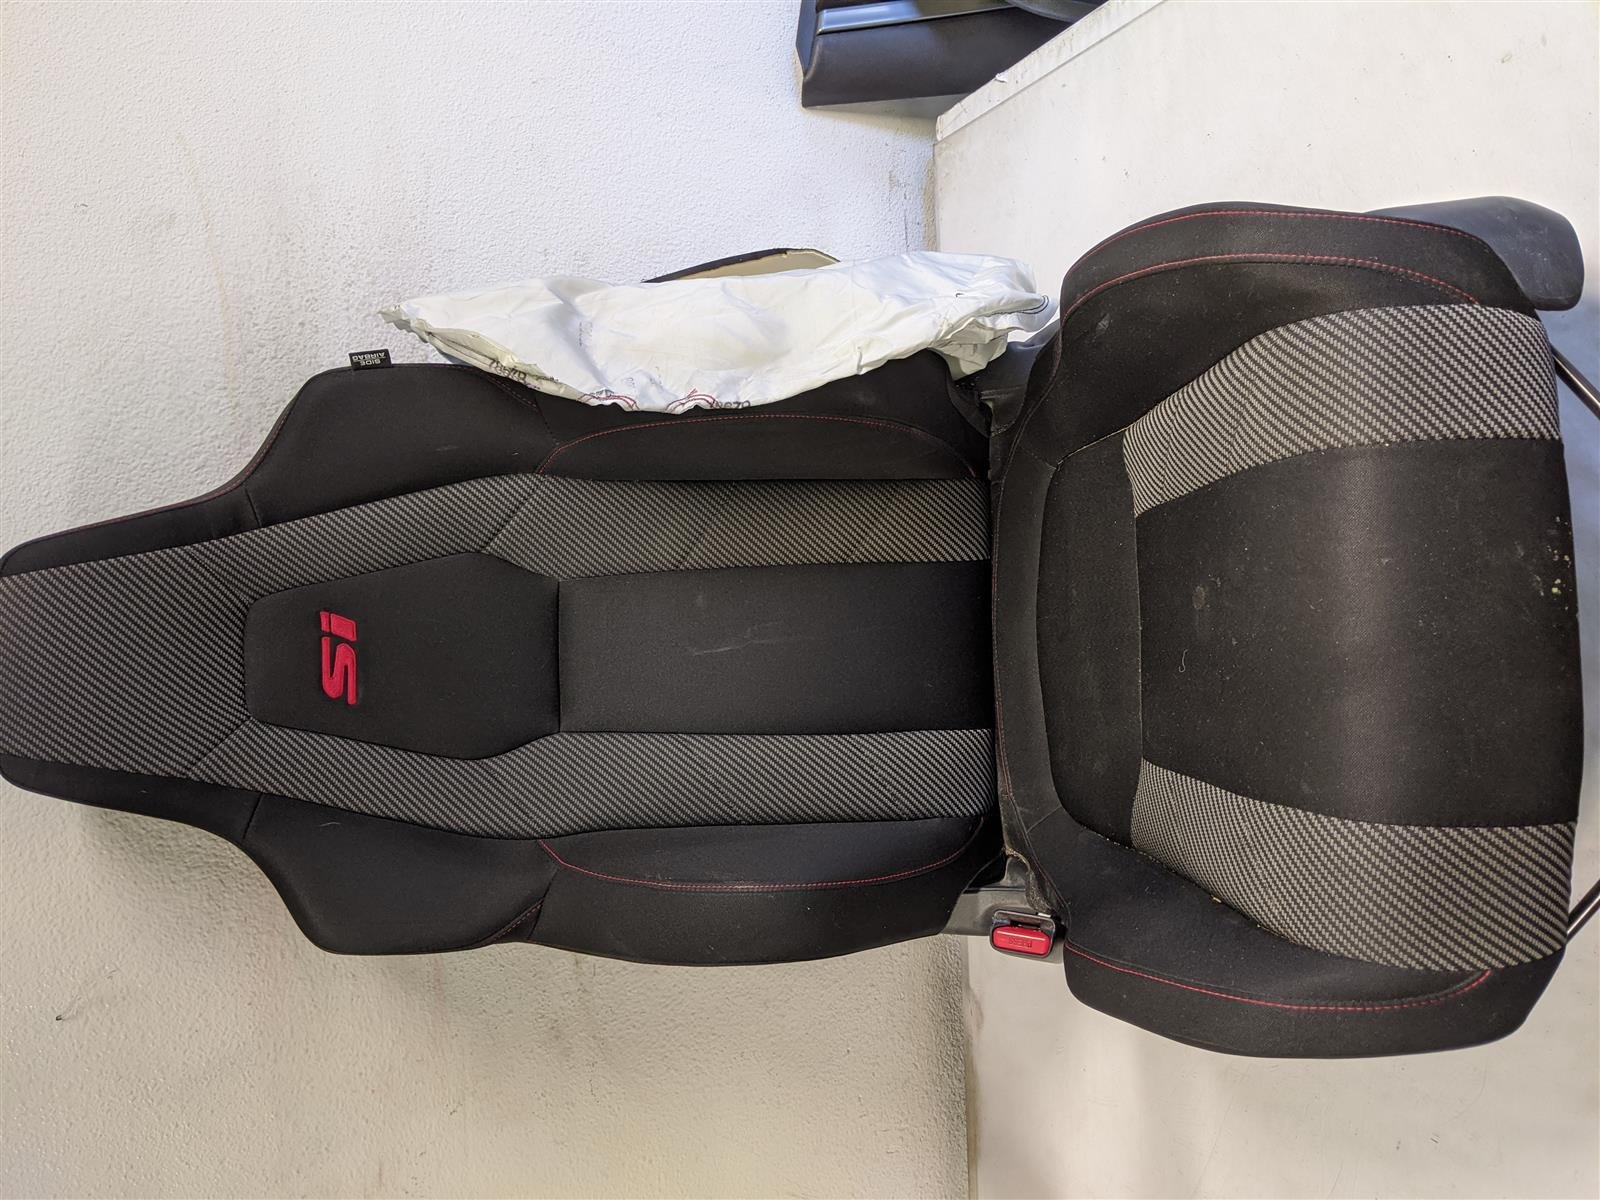 2018 Honda Civic 4dr Si Front Driver Seat Heated, Bag Blown Replacement